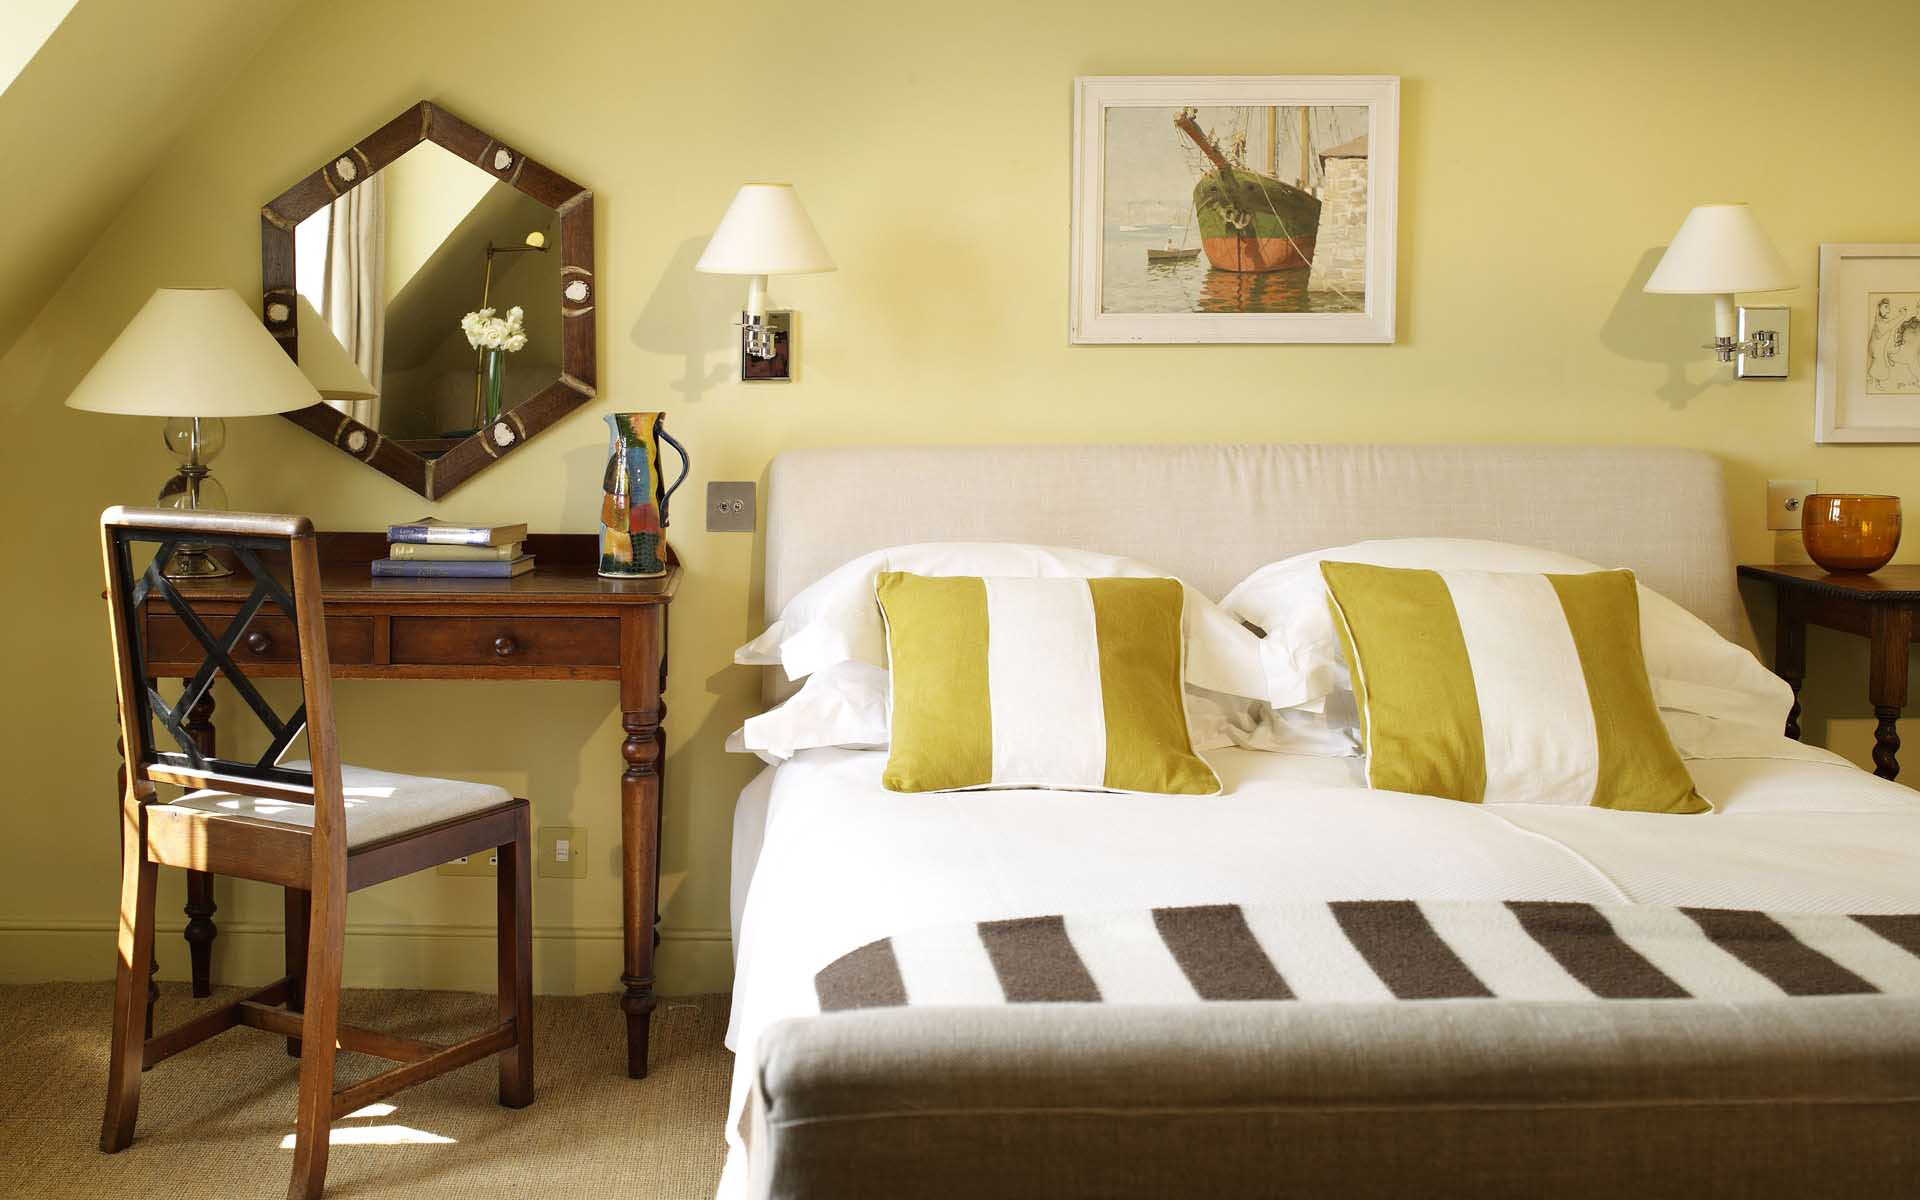 SPRING CLEANING IN A SNAP: Your Bedroom, a Serene Retreat